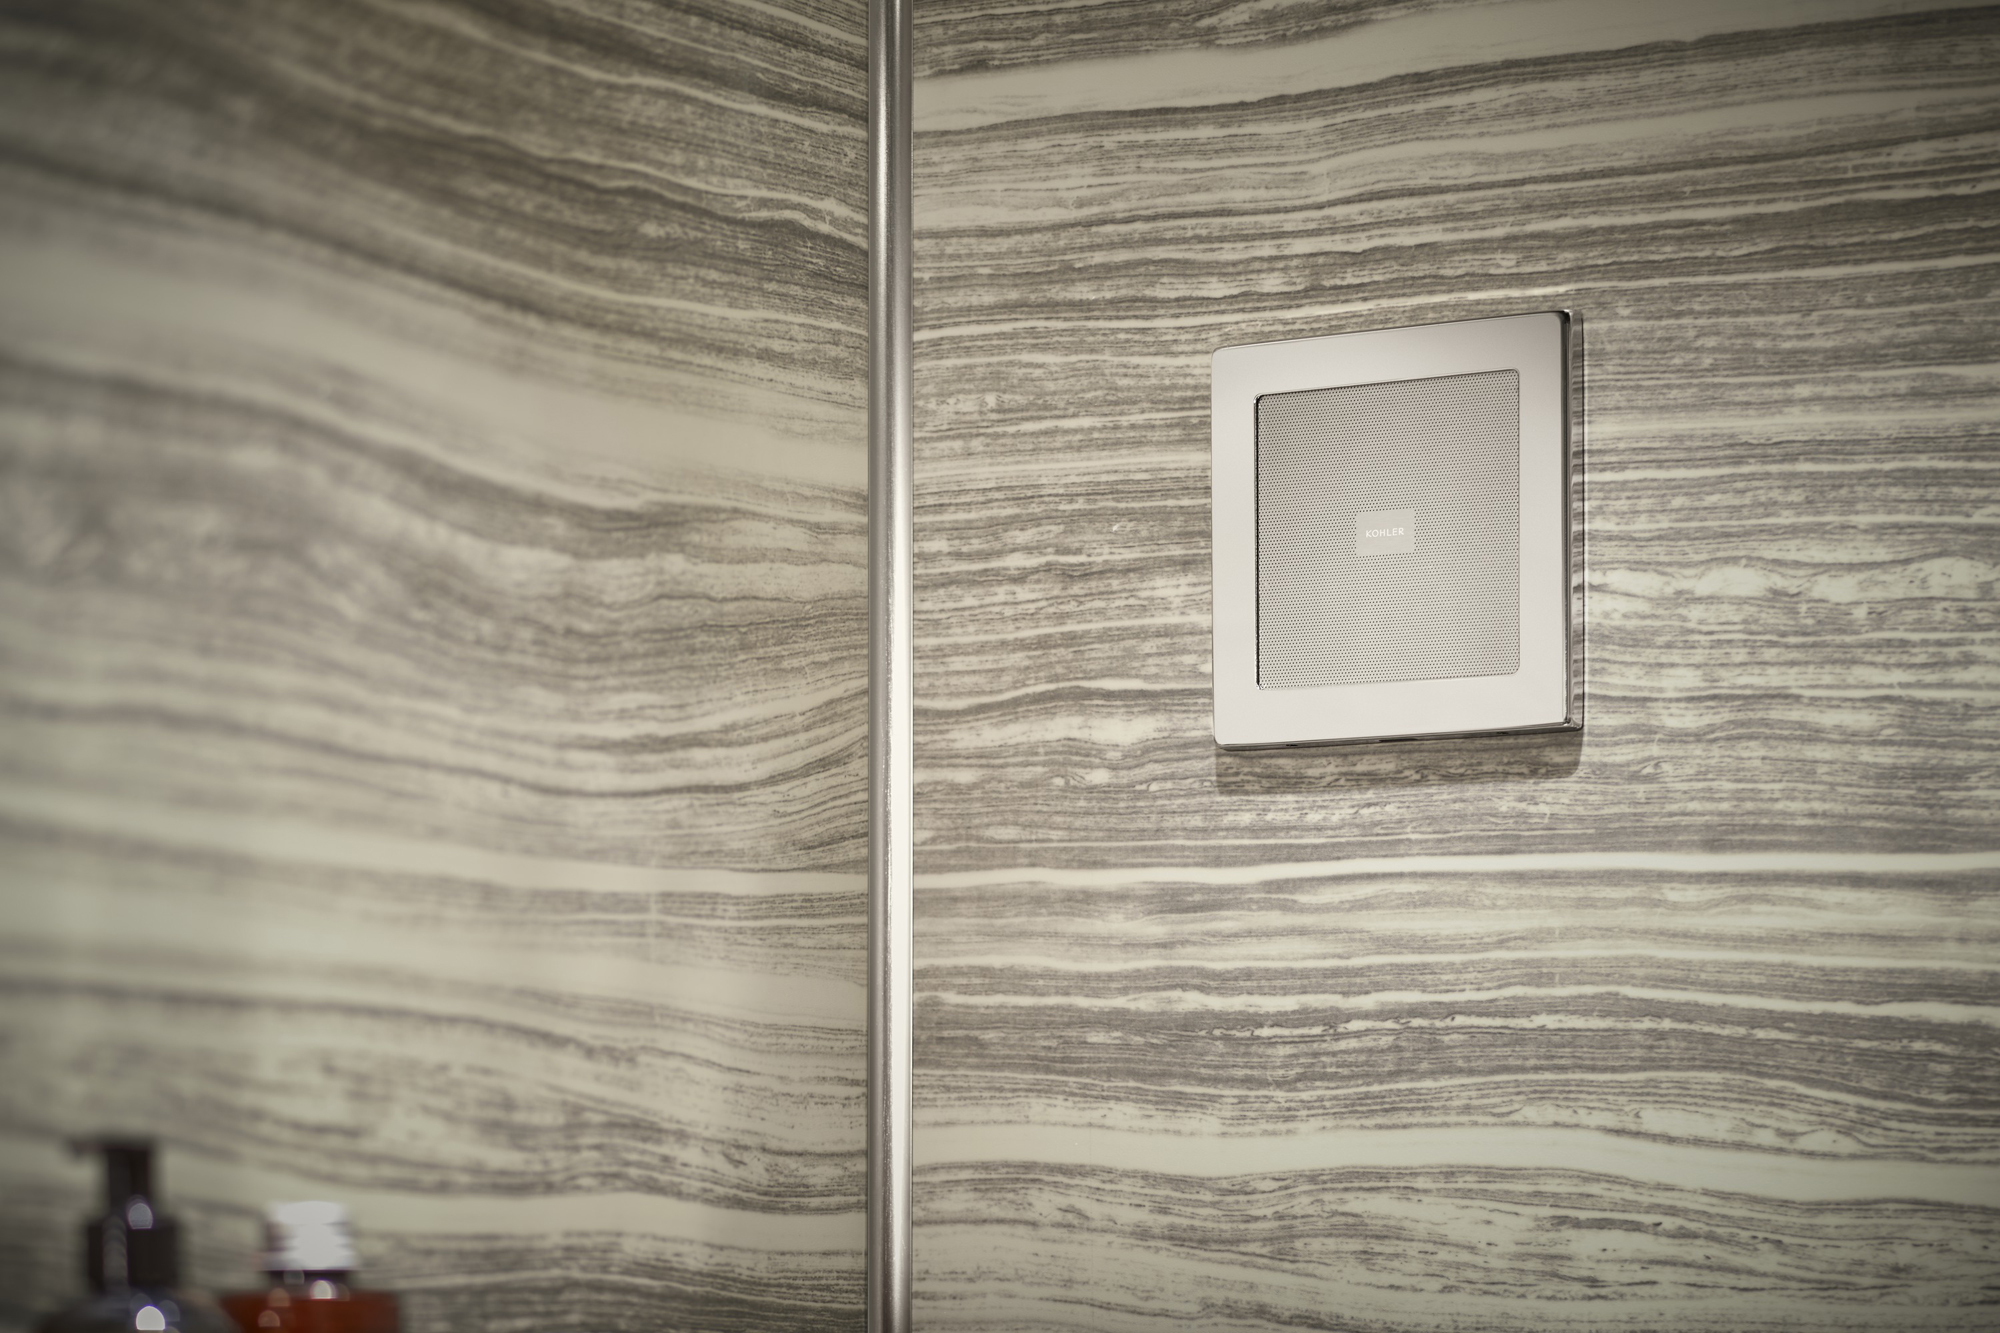 Choreograph® shower walls   SoundTile® speakers     The sleek, unobtrusive design of the speakers brings sound to the bathroom without interrupting the modern design.